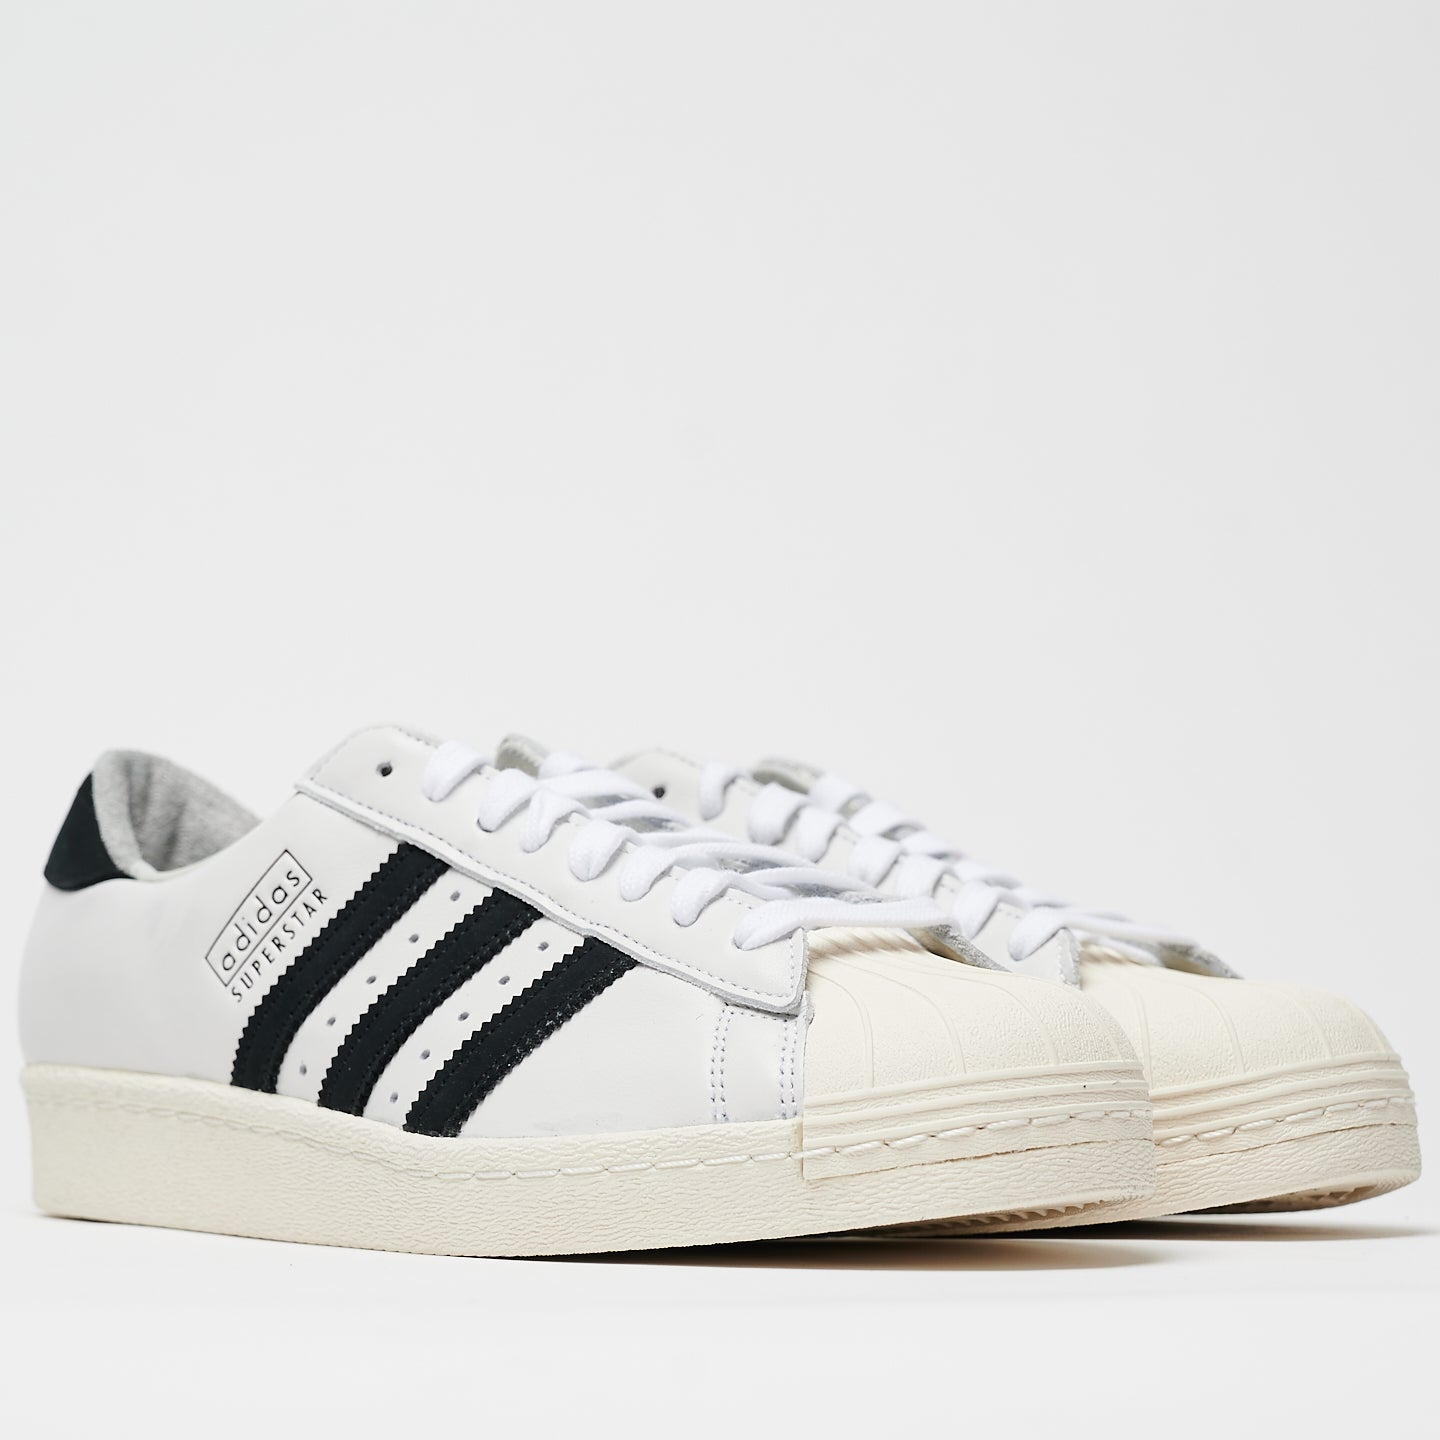 ADIDAS M'S FOOTWEAR SUPERSTAR 80'S RECON - CLOUD WHITE/CORE BLACK/OFF WHITE